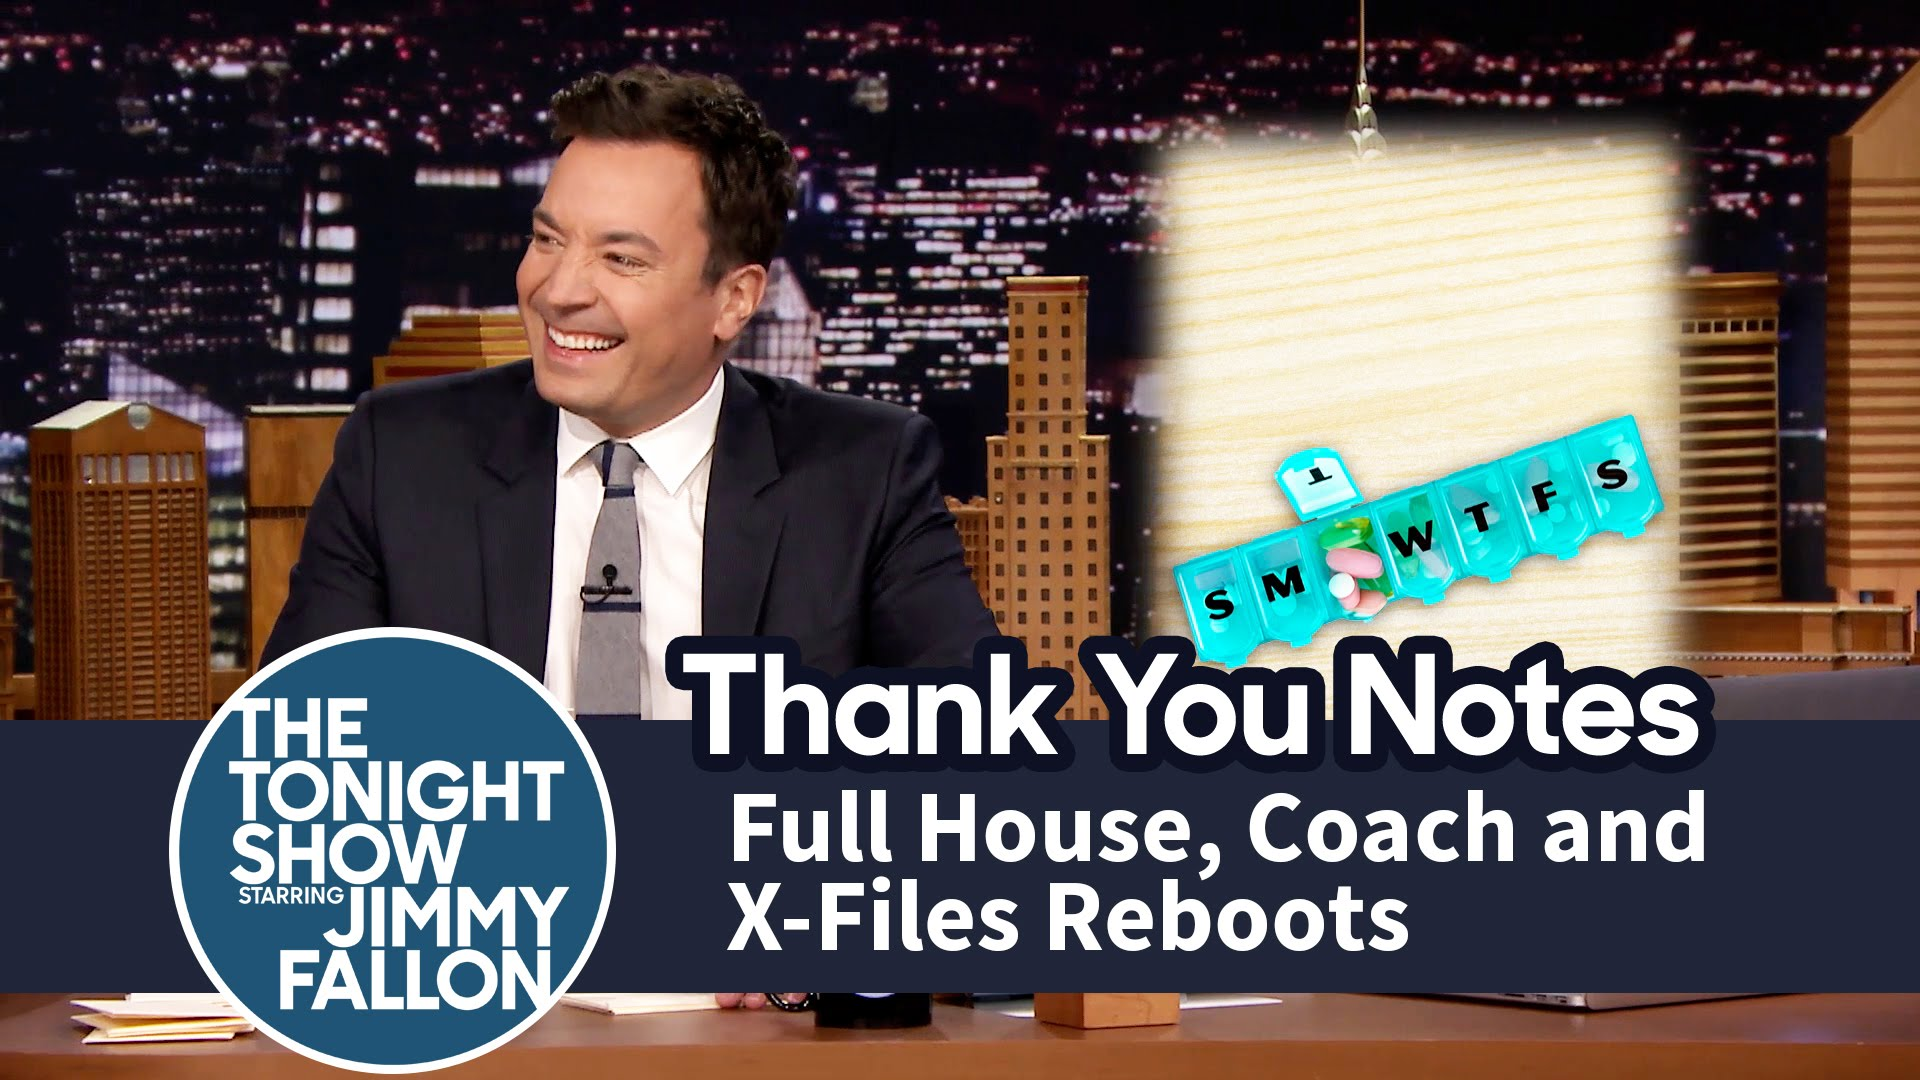 Thank You House: Thank You Notes: Full House, Coach And X-Files Reboots